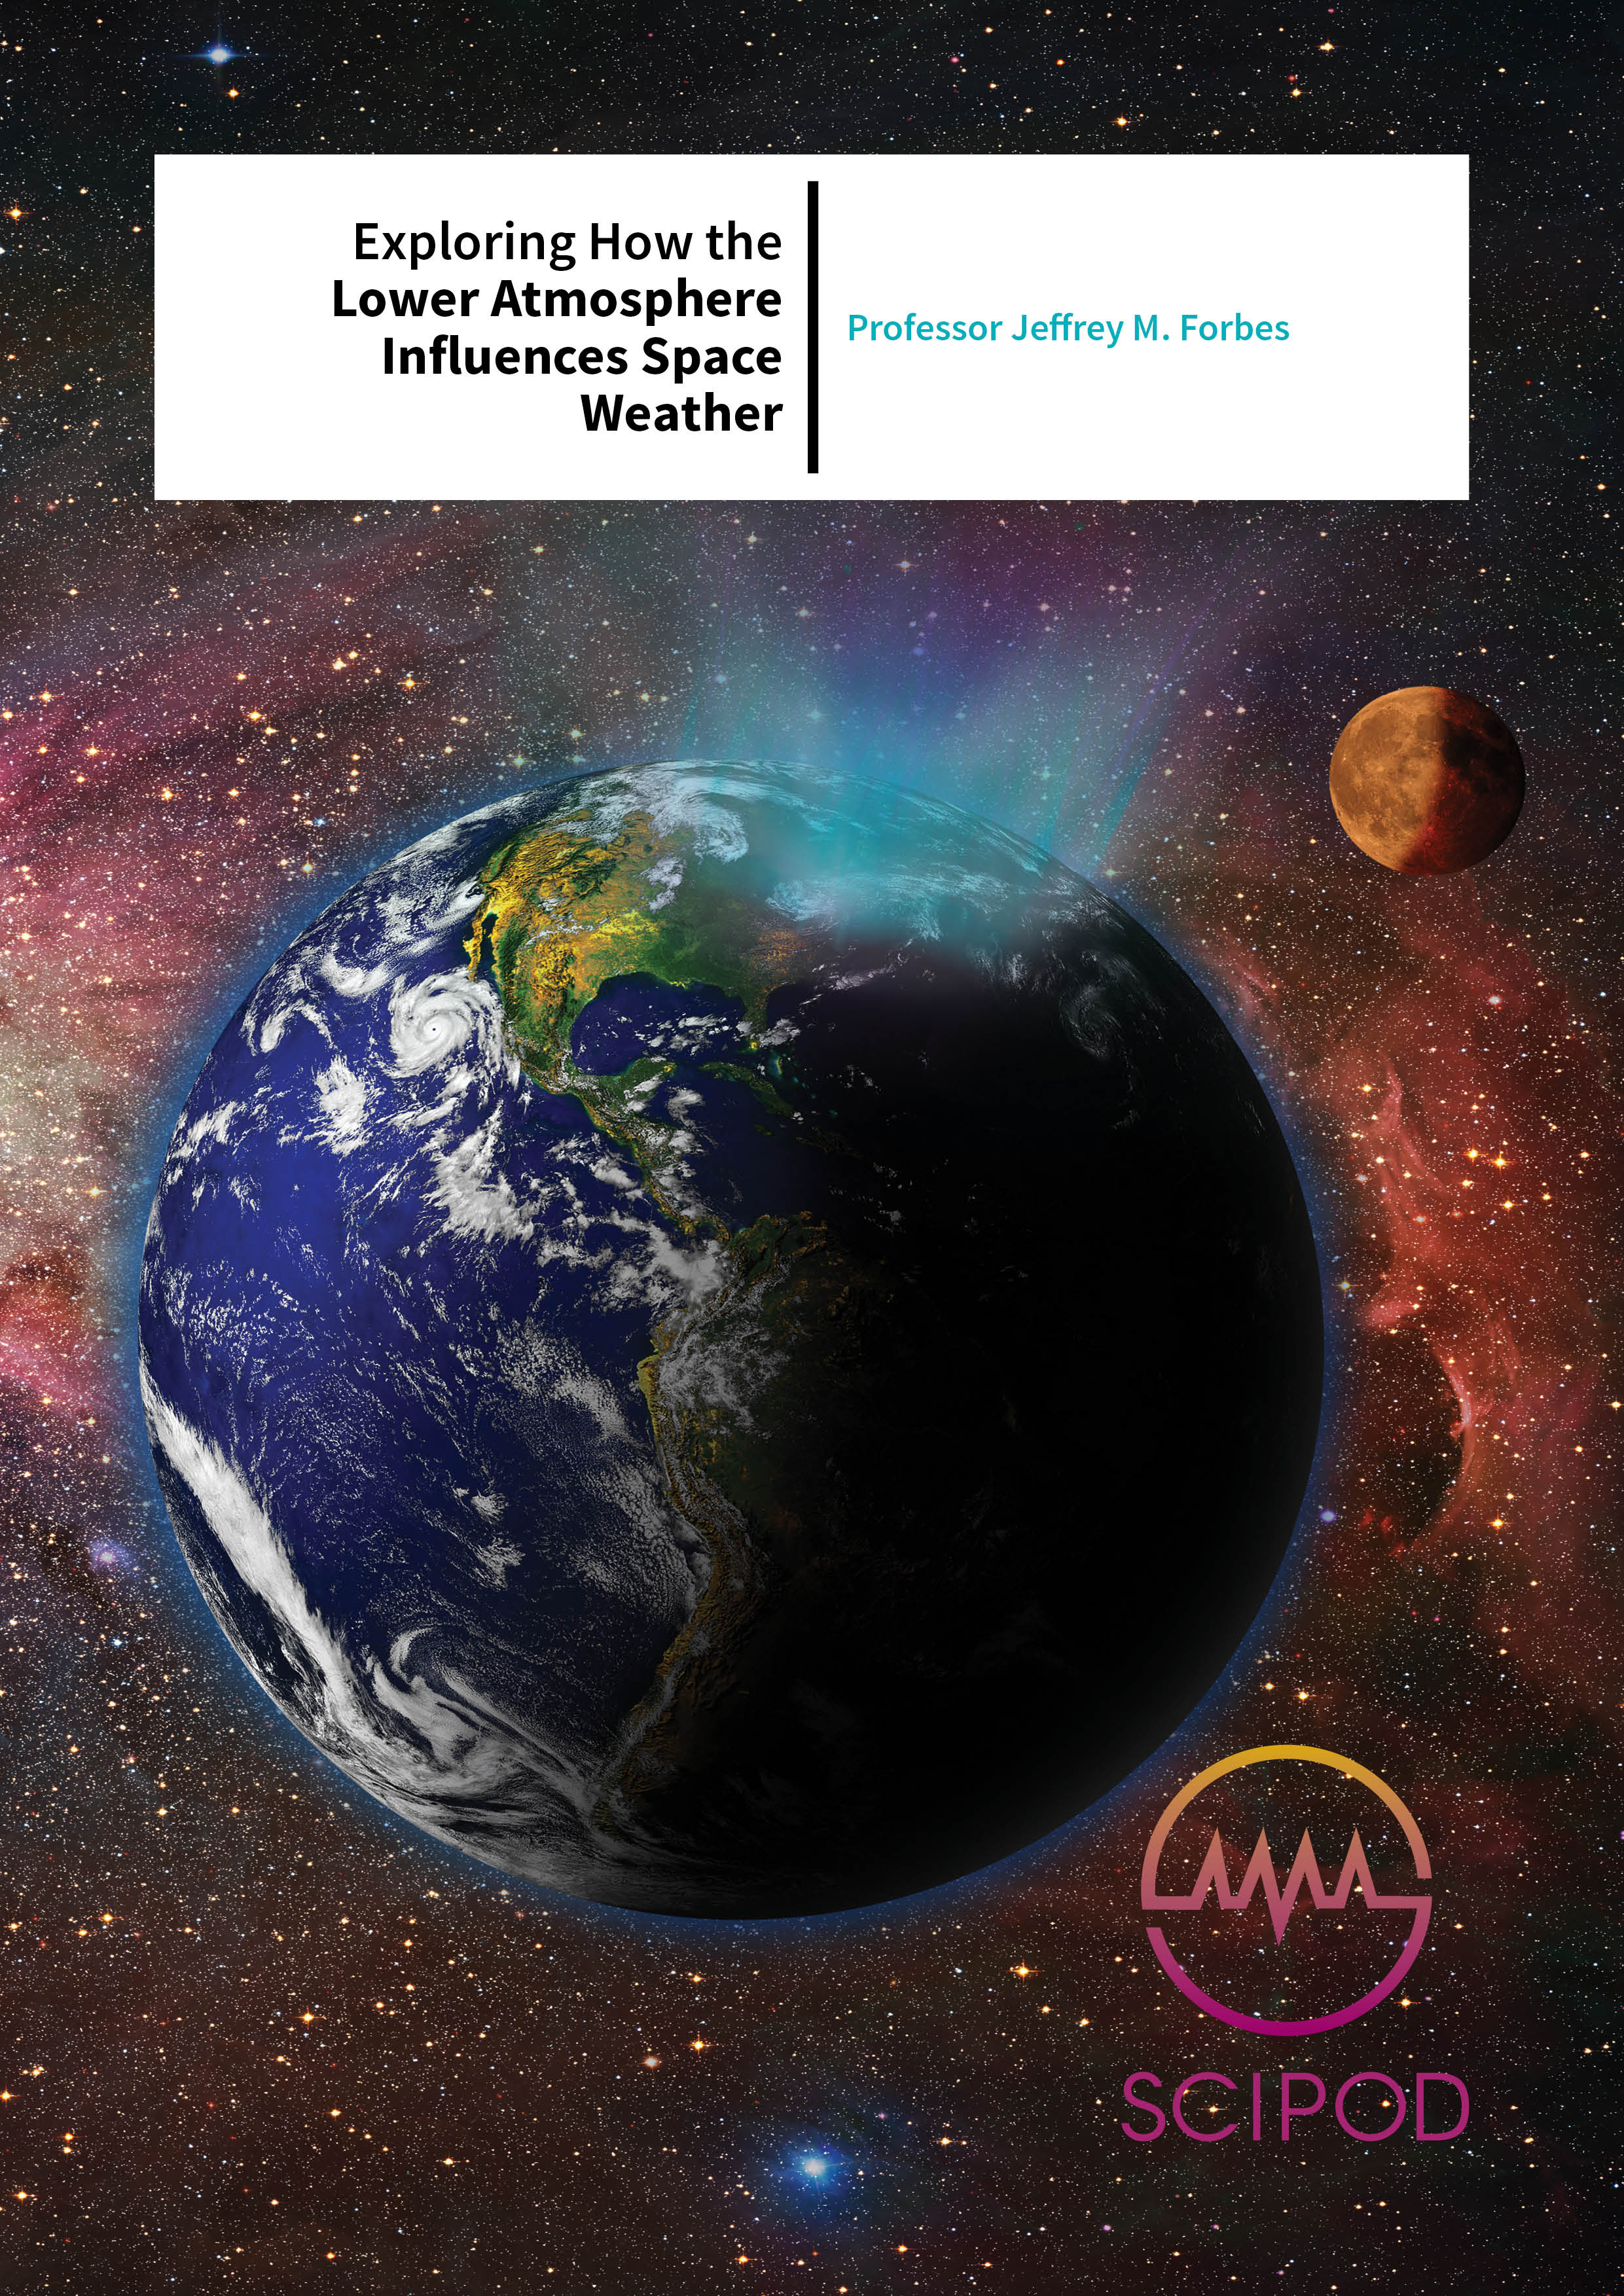 Exploring How the Lower Atmosphere Influences Space Weather – Prof Jeffrey M. Forbes, University of Colorado